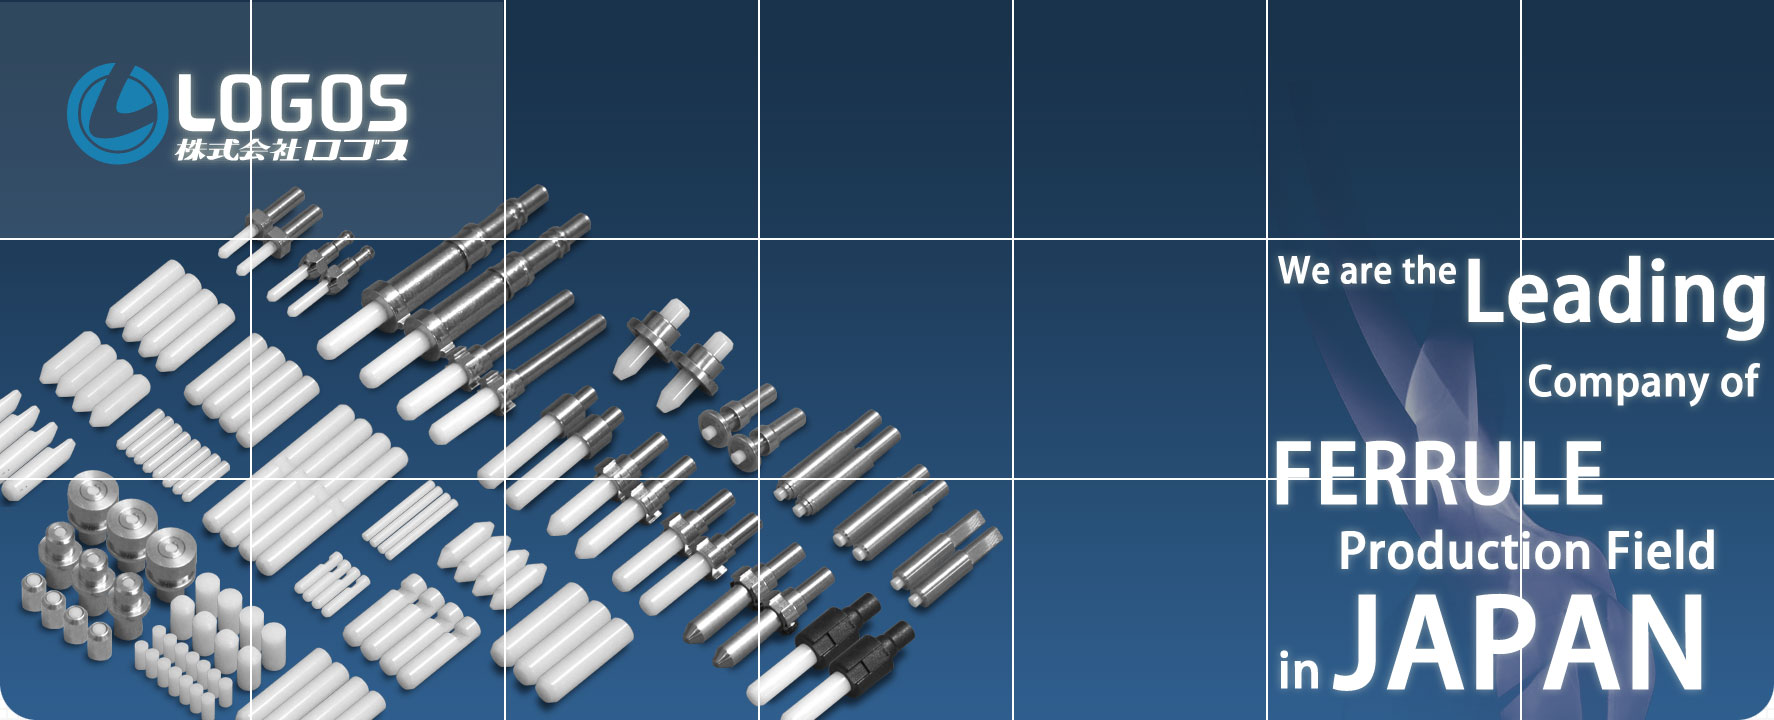 We are the Leading Company of the Ferrule Production Field in JAPAN